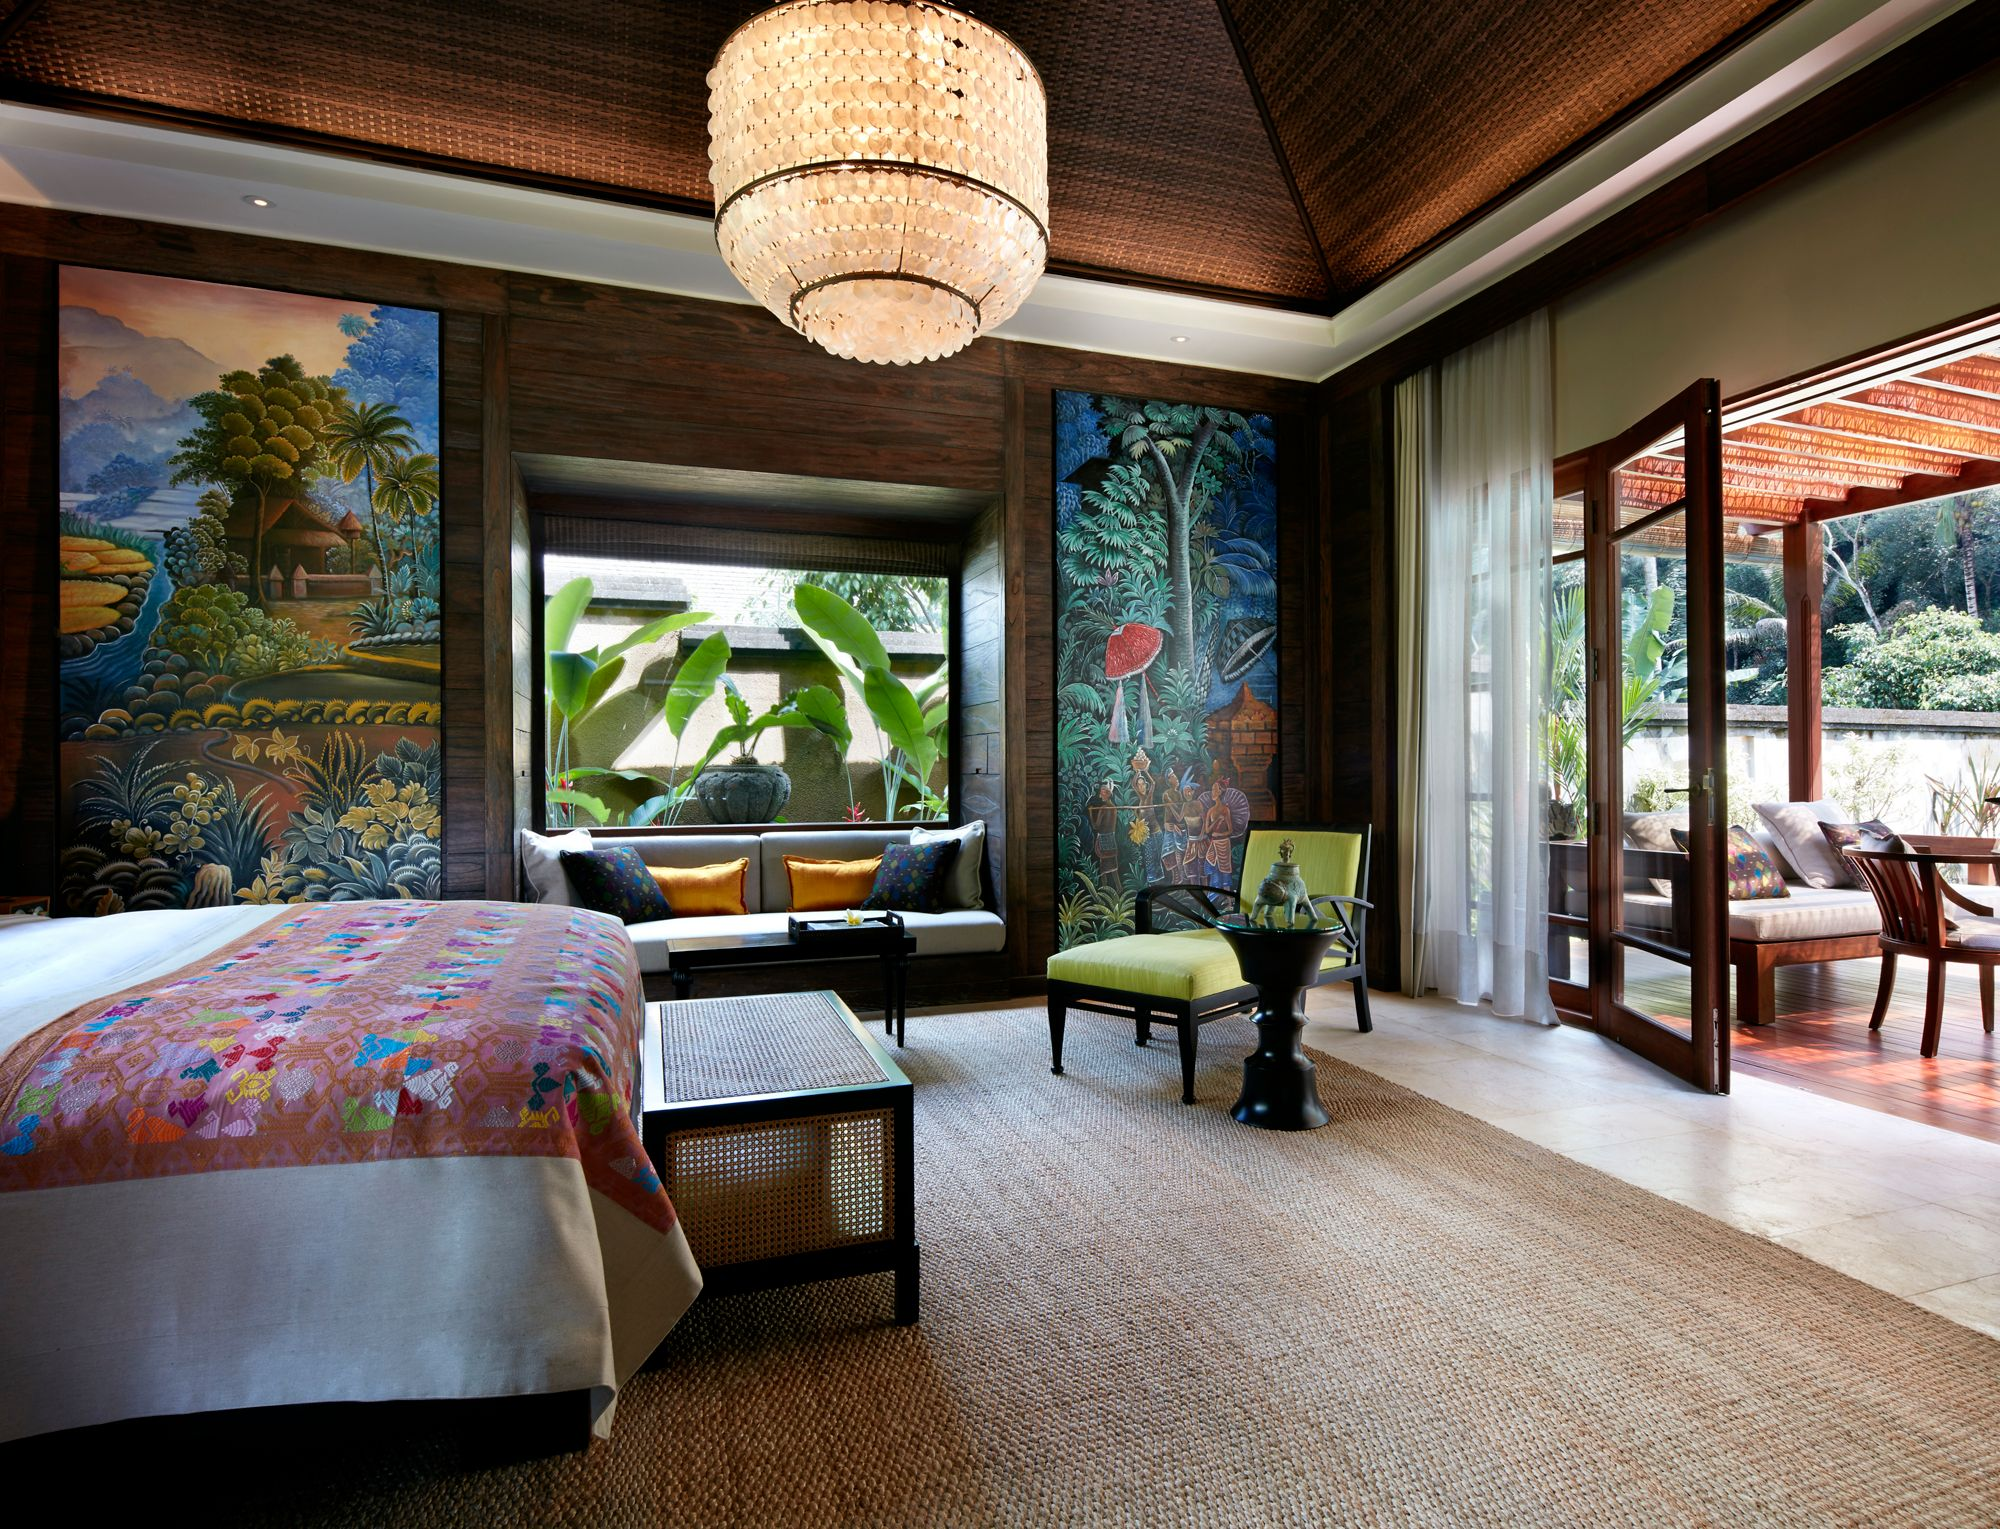 Bedroom featuring floor-to-ceiling Balinese artwork as well as a king bed facing glass doors that open onto the terrace